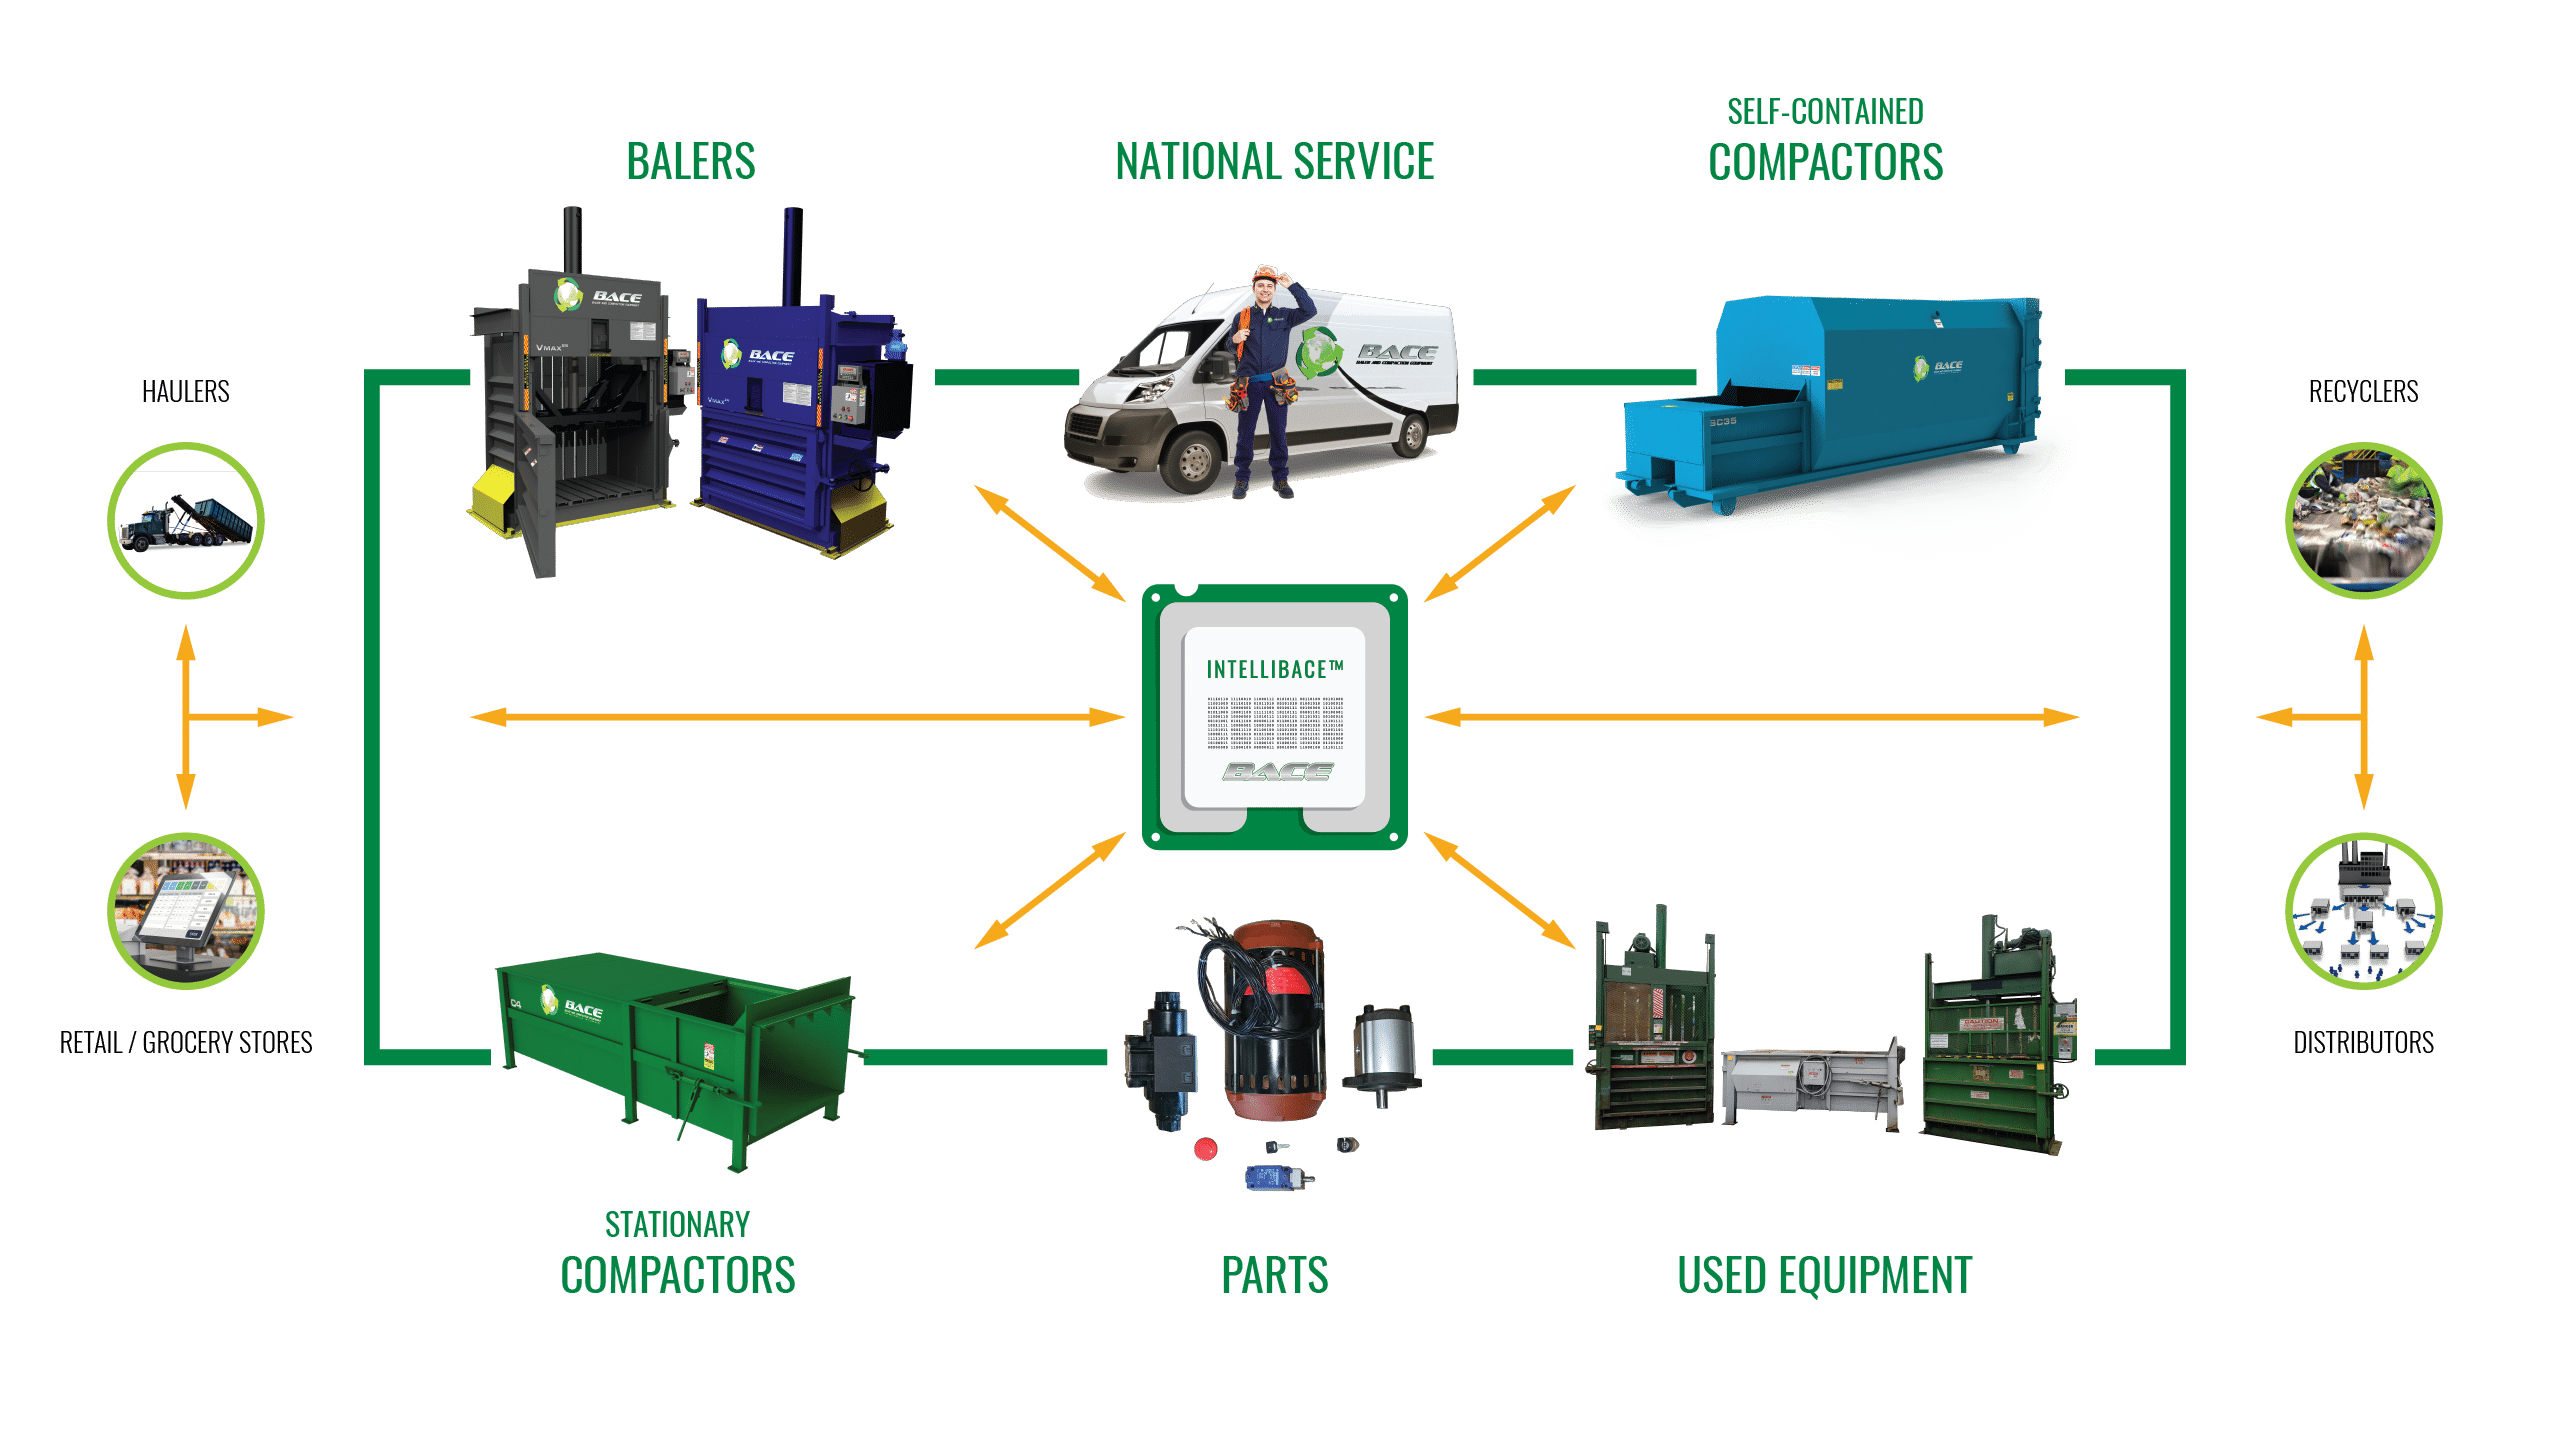 BACE: Baler and Compaction Ecosystem